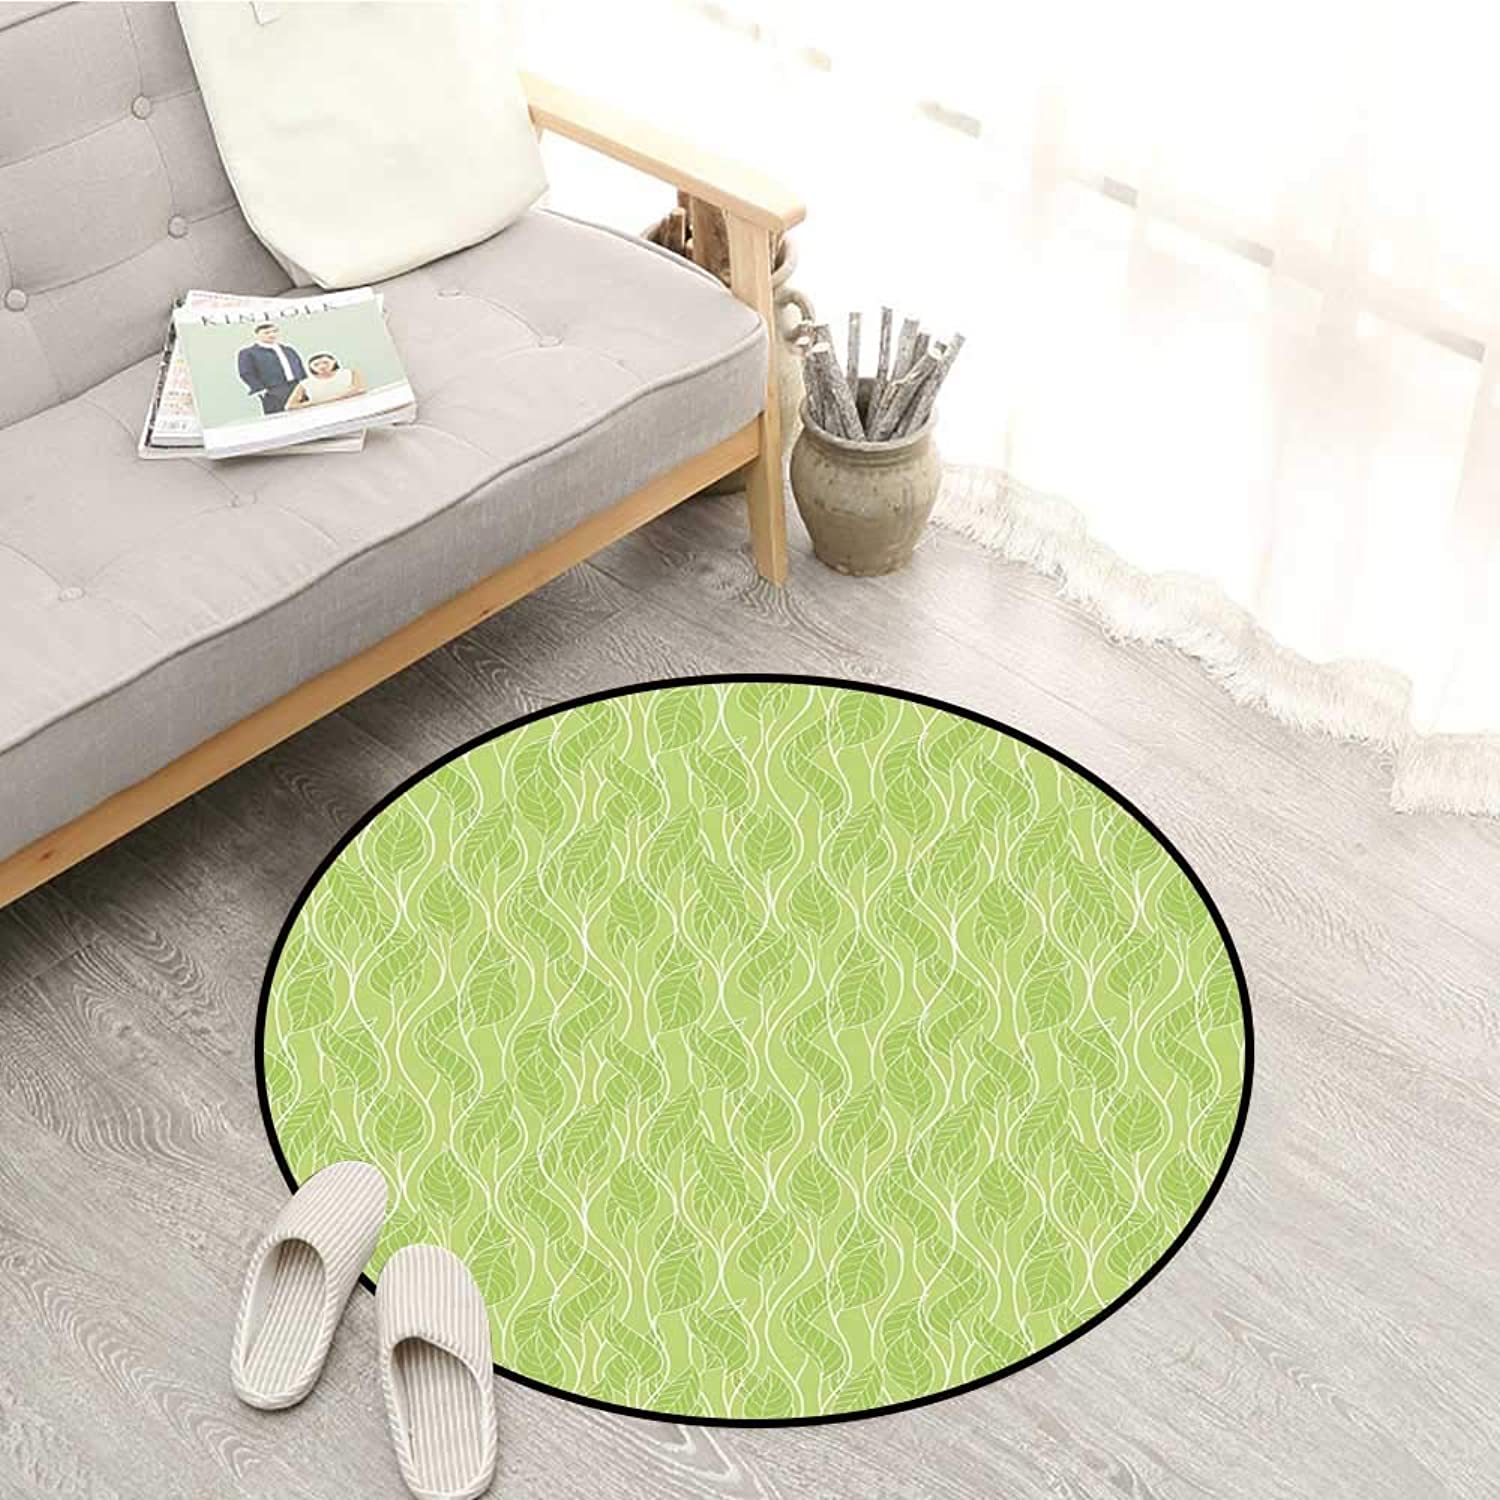 Leaves Carpets Stylized Green Leaves with Curvy Twigs Botanical Natural Forest Inspiration Sofa Coffee Table Mat 4'3  Pale Green White